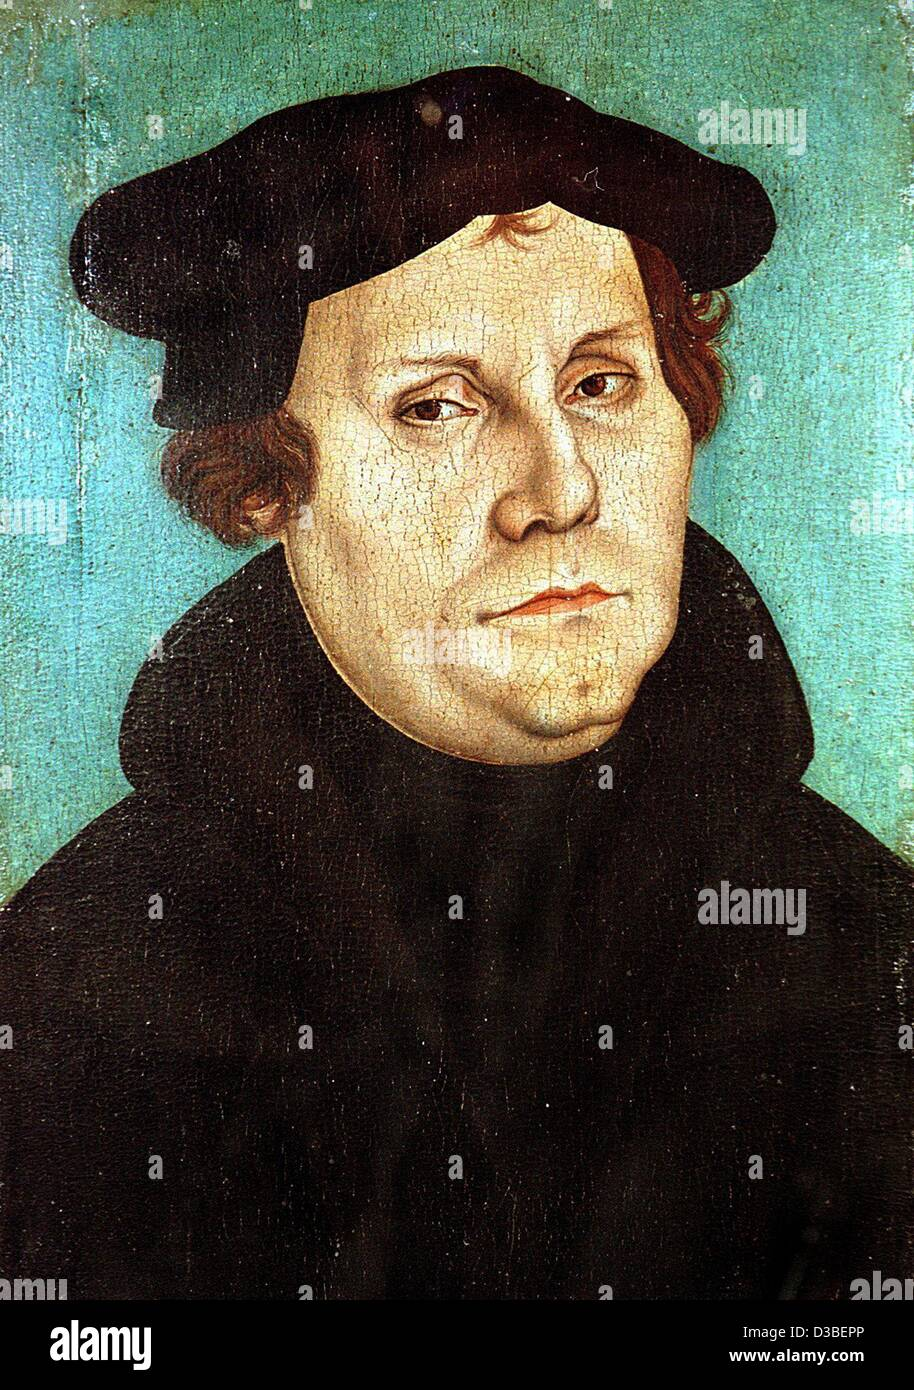 (dpa files) - Reformer Martin Luther, painted in oil on wood by Lucas Cranach the Elder, 1528. The painting is exhibited - Stock Image